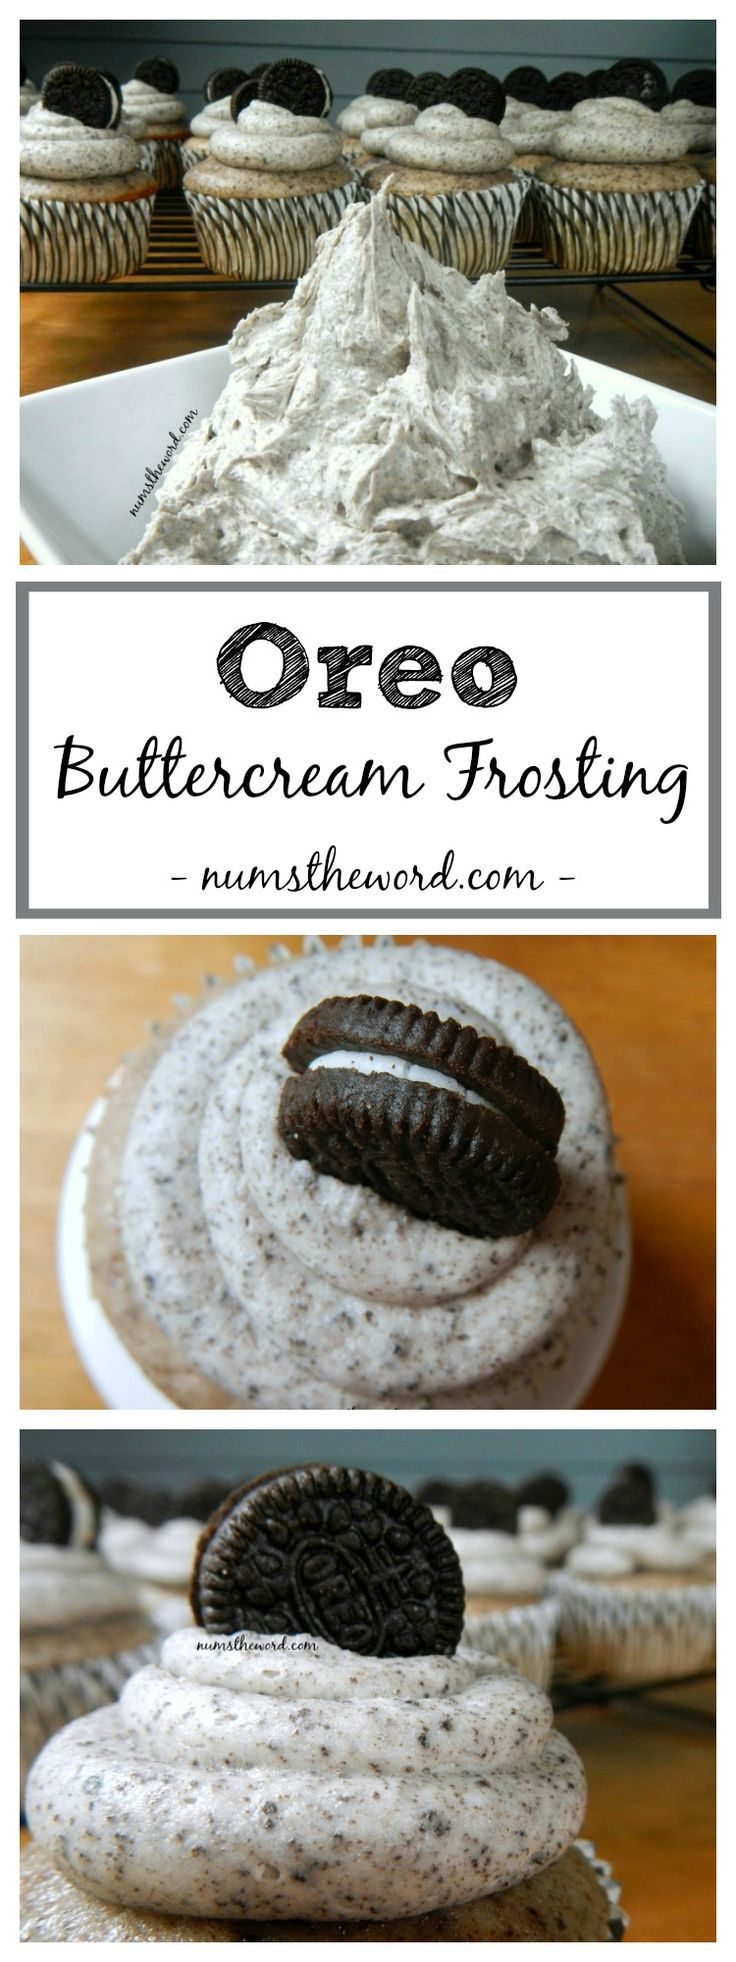 Oreo Buttercream Frosting is the BEST frosting you'll ever eat. It tastes JUST LIKE AN OREO and is perfect as a cake frosting or a cupcake frosting! More